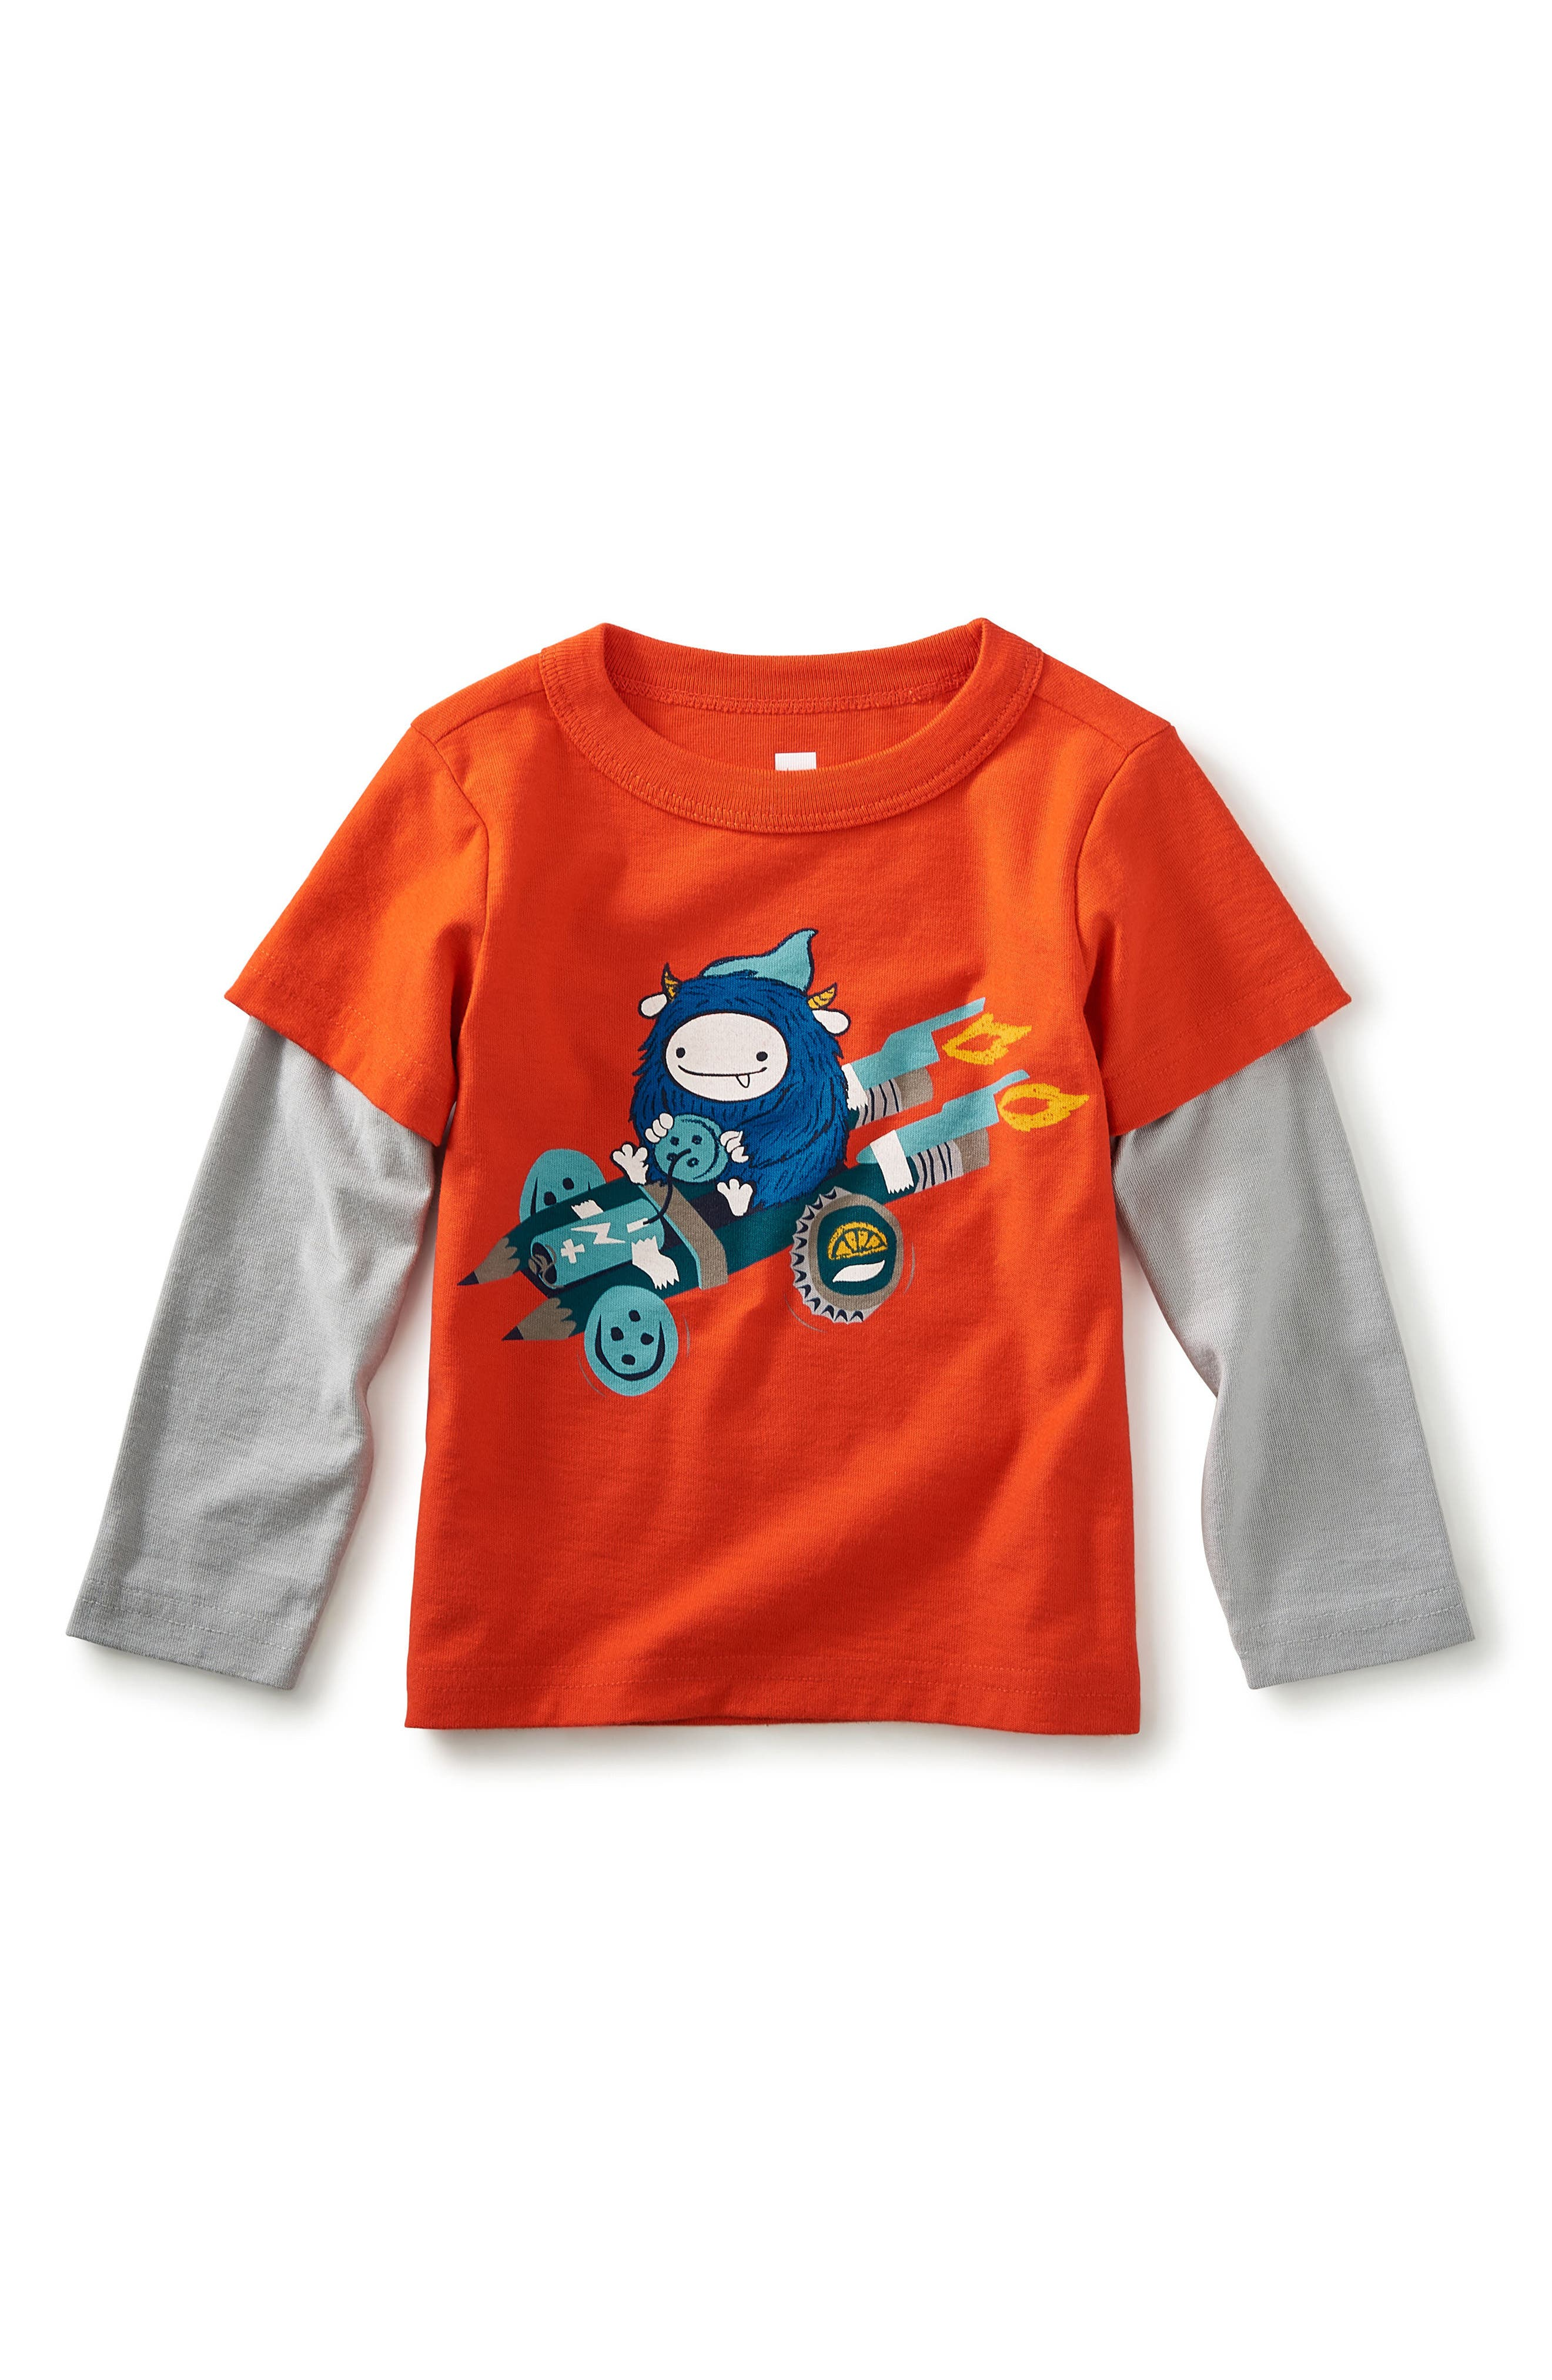 Browniemobile Graphic T-Shirt,                             Main thumbnail 1, color,                             Red Finch